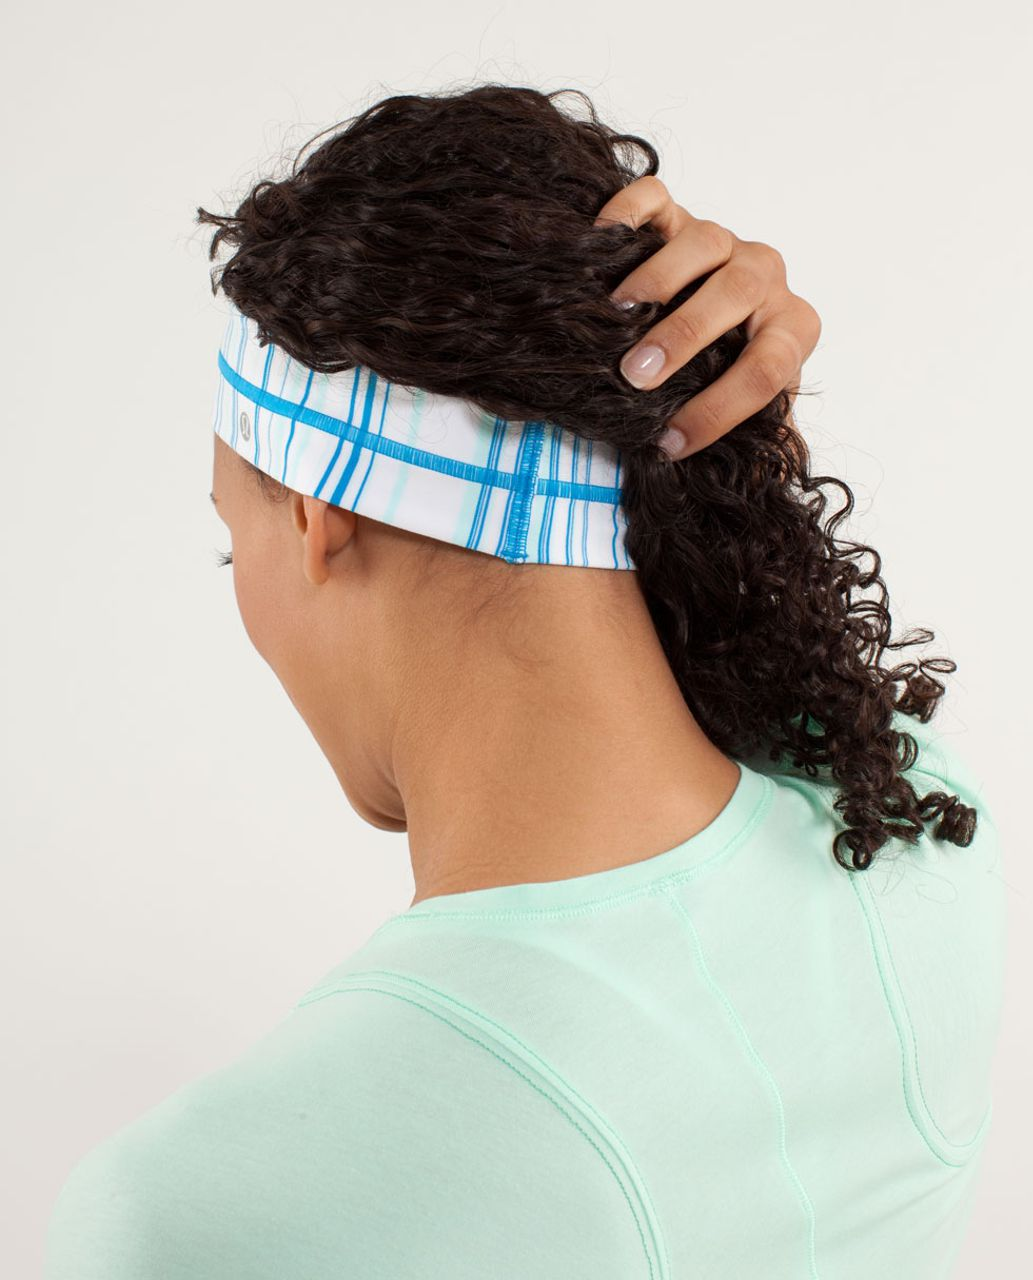 Lululemon Fly Away Tamer Headband - Candy Stripe Aquamarine